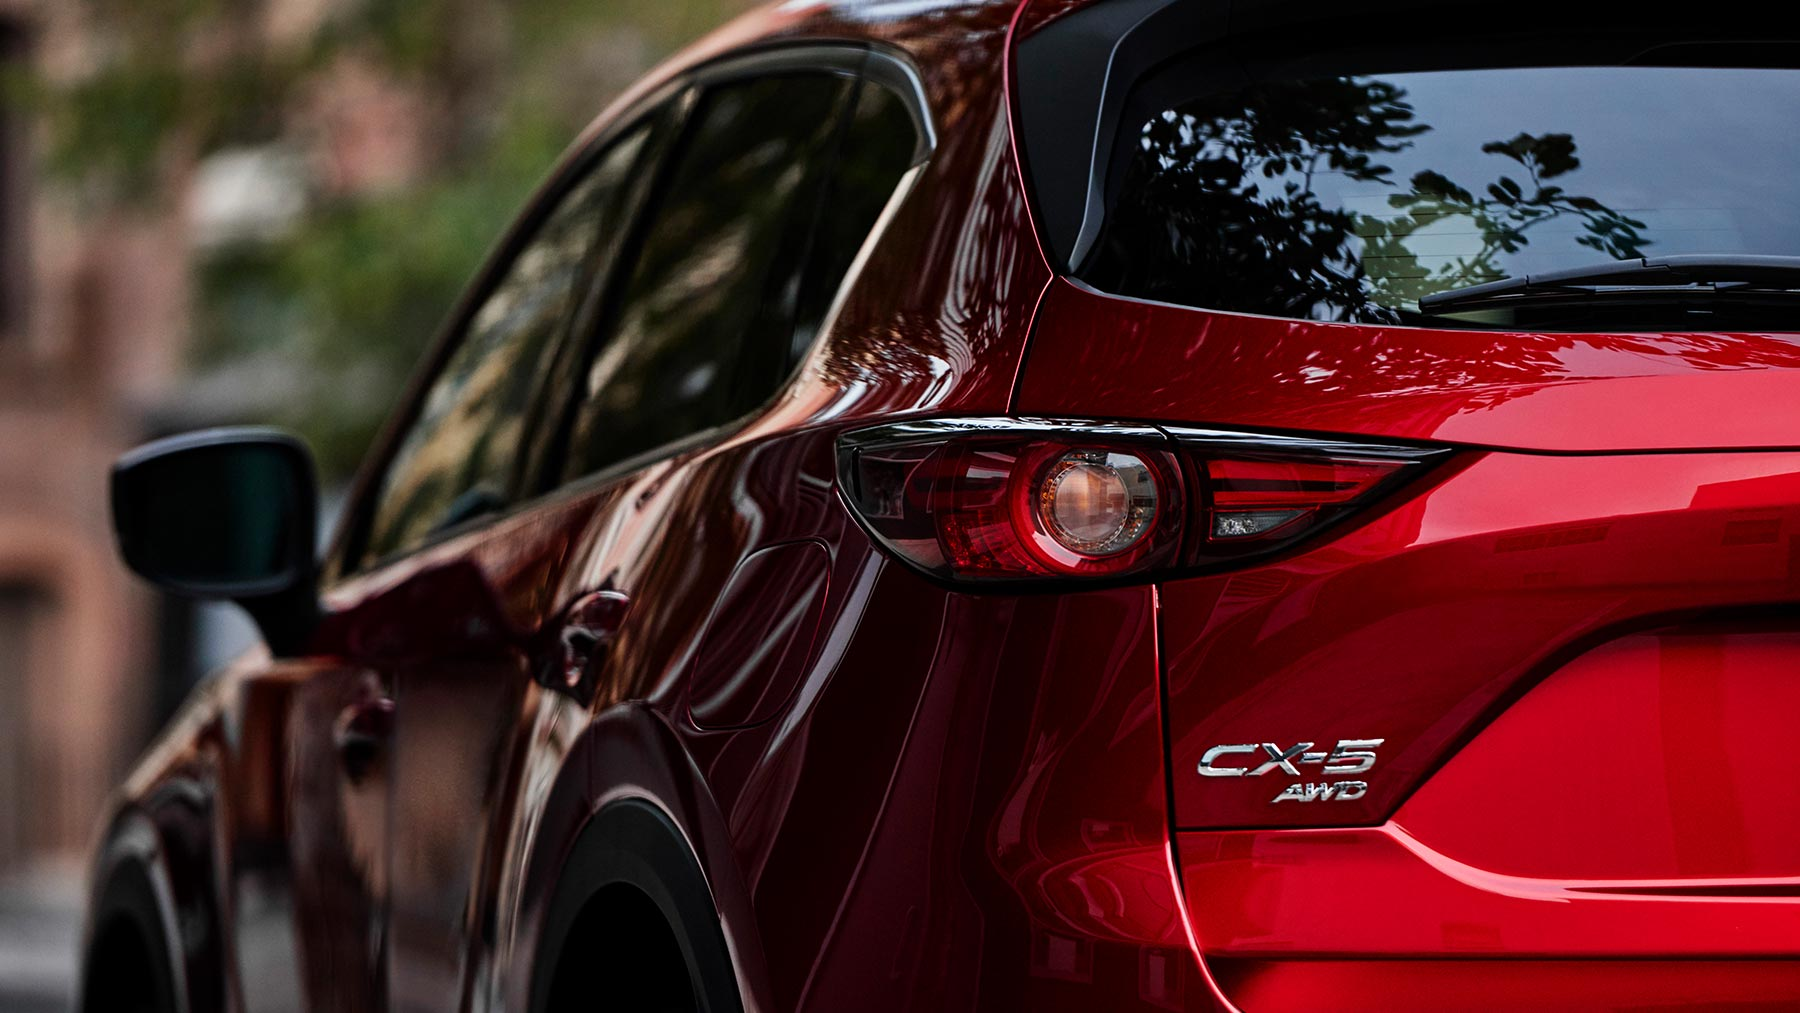 2019 Mazda CX-5 for Sale near Galena Park, TX